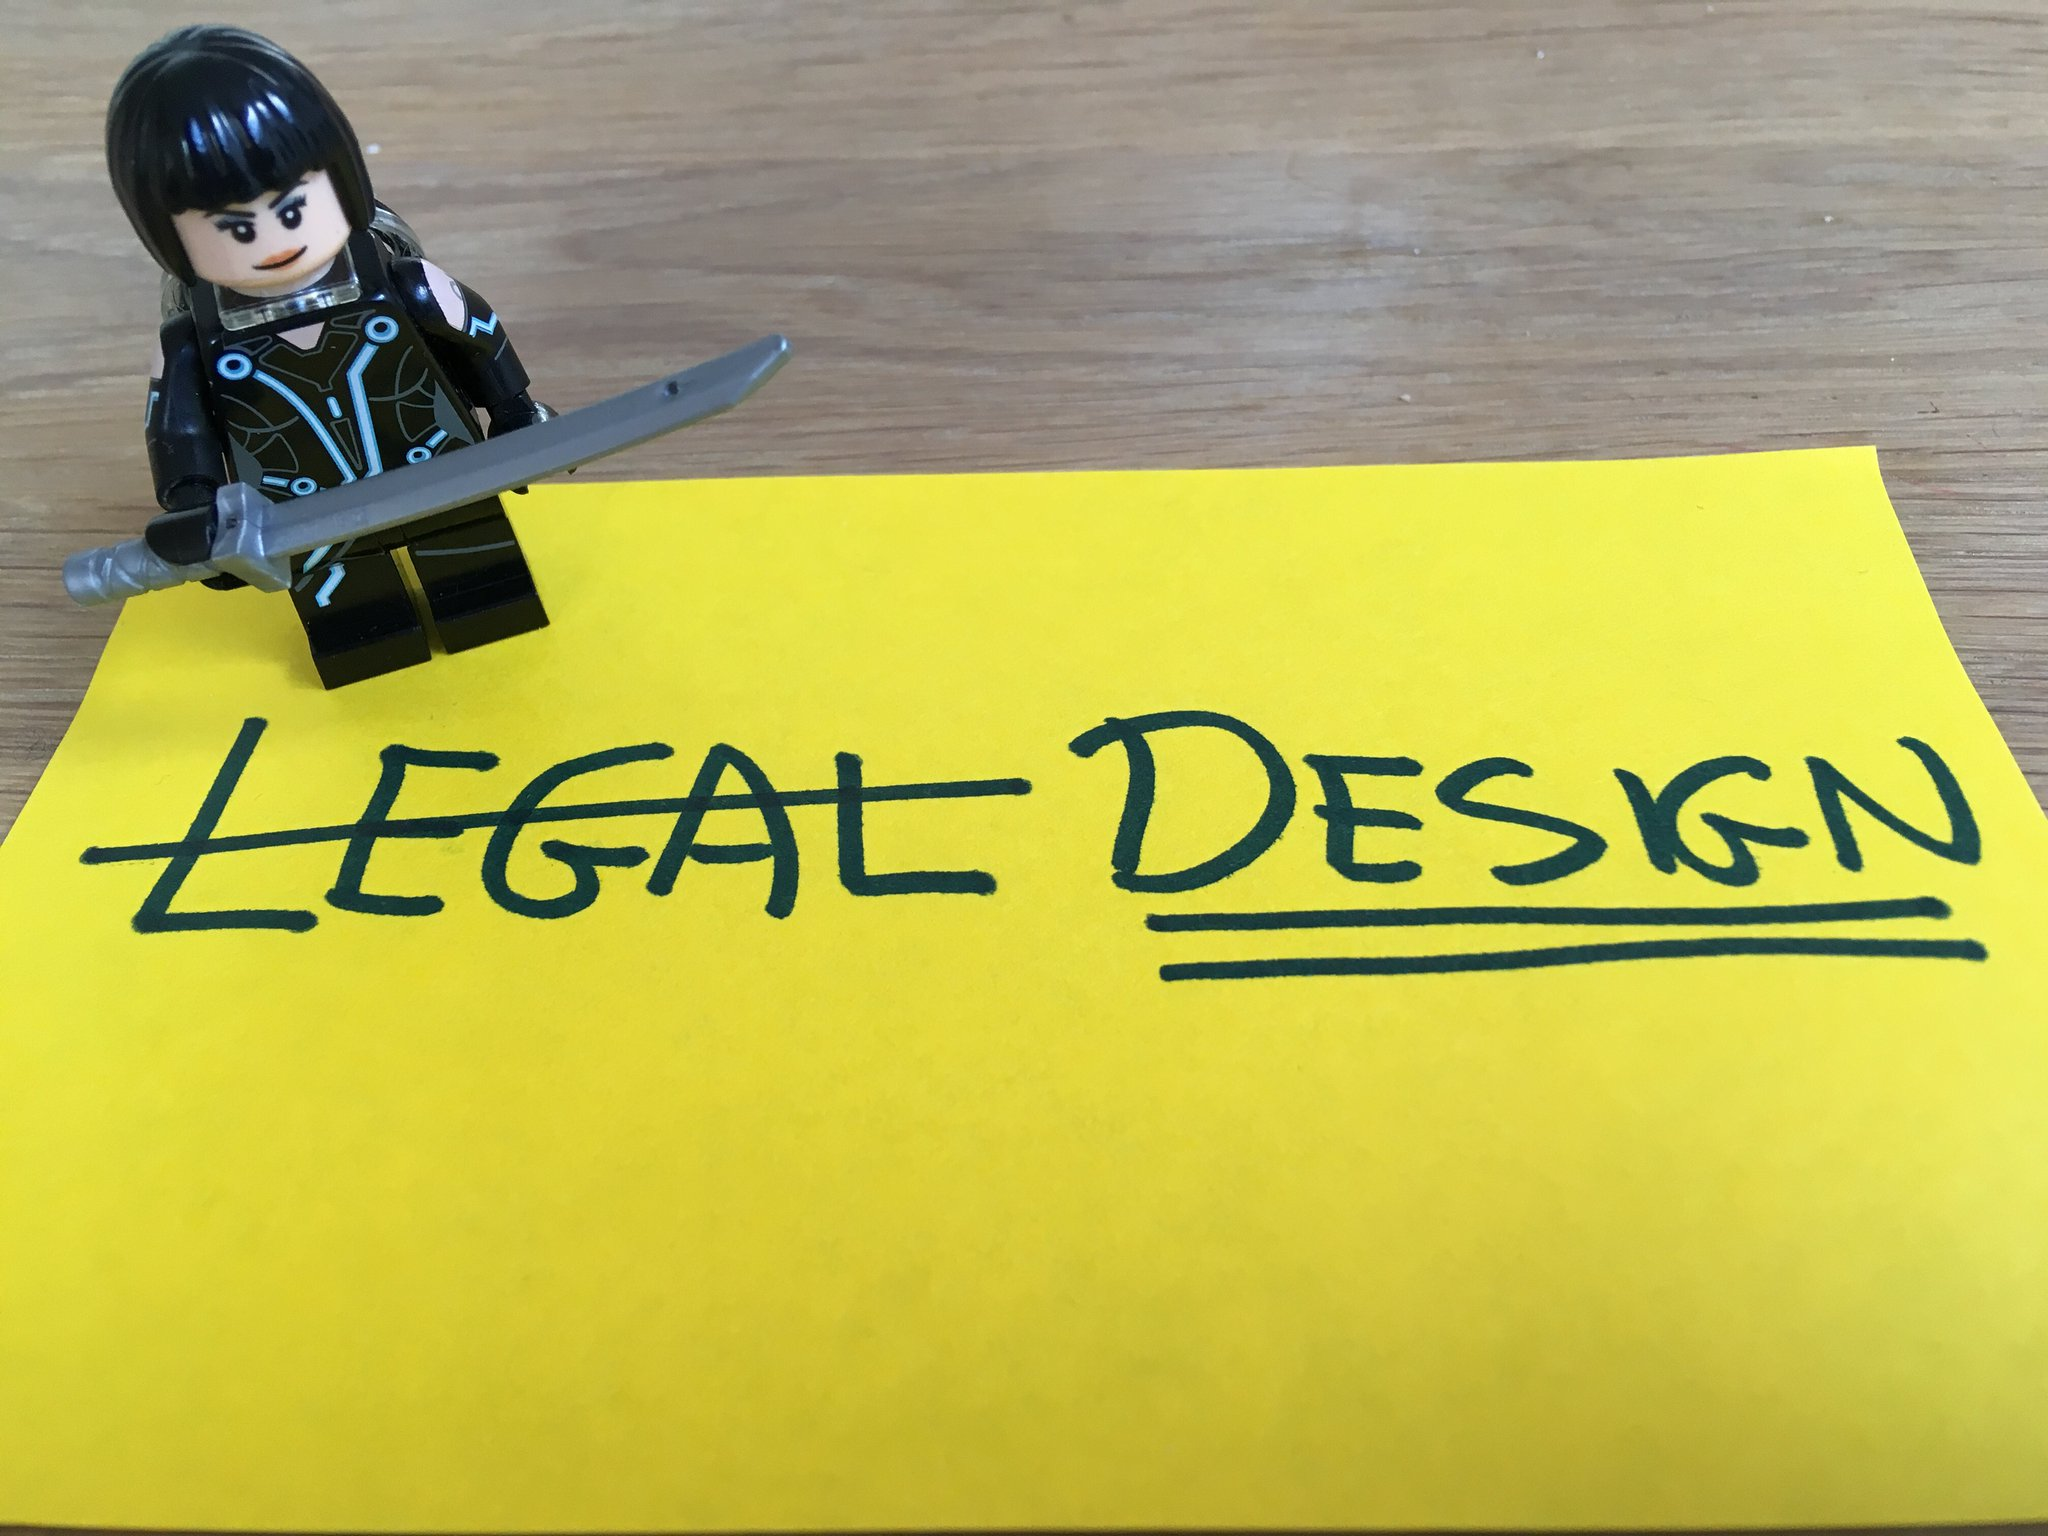 Legal Design without the Legal